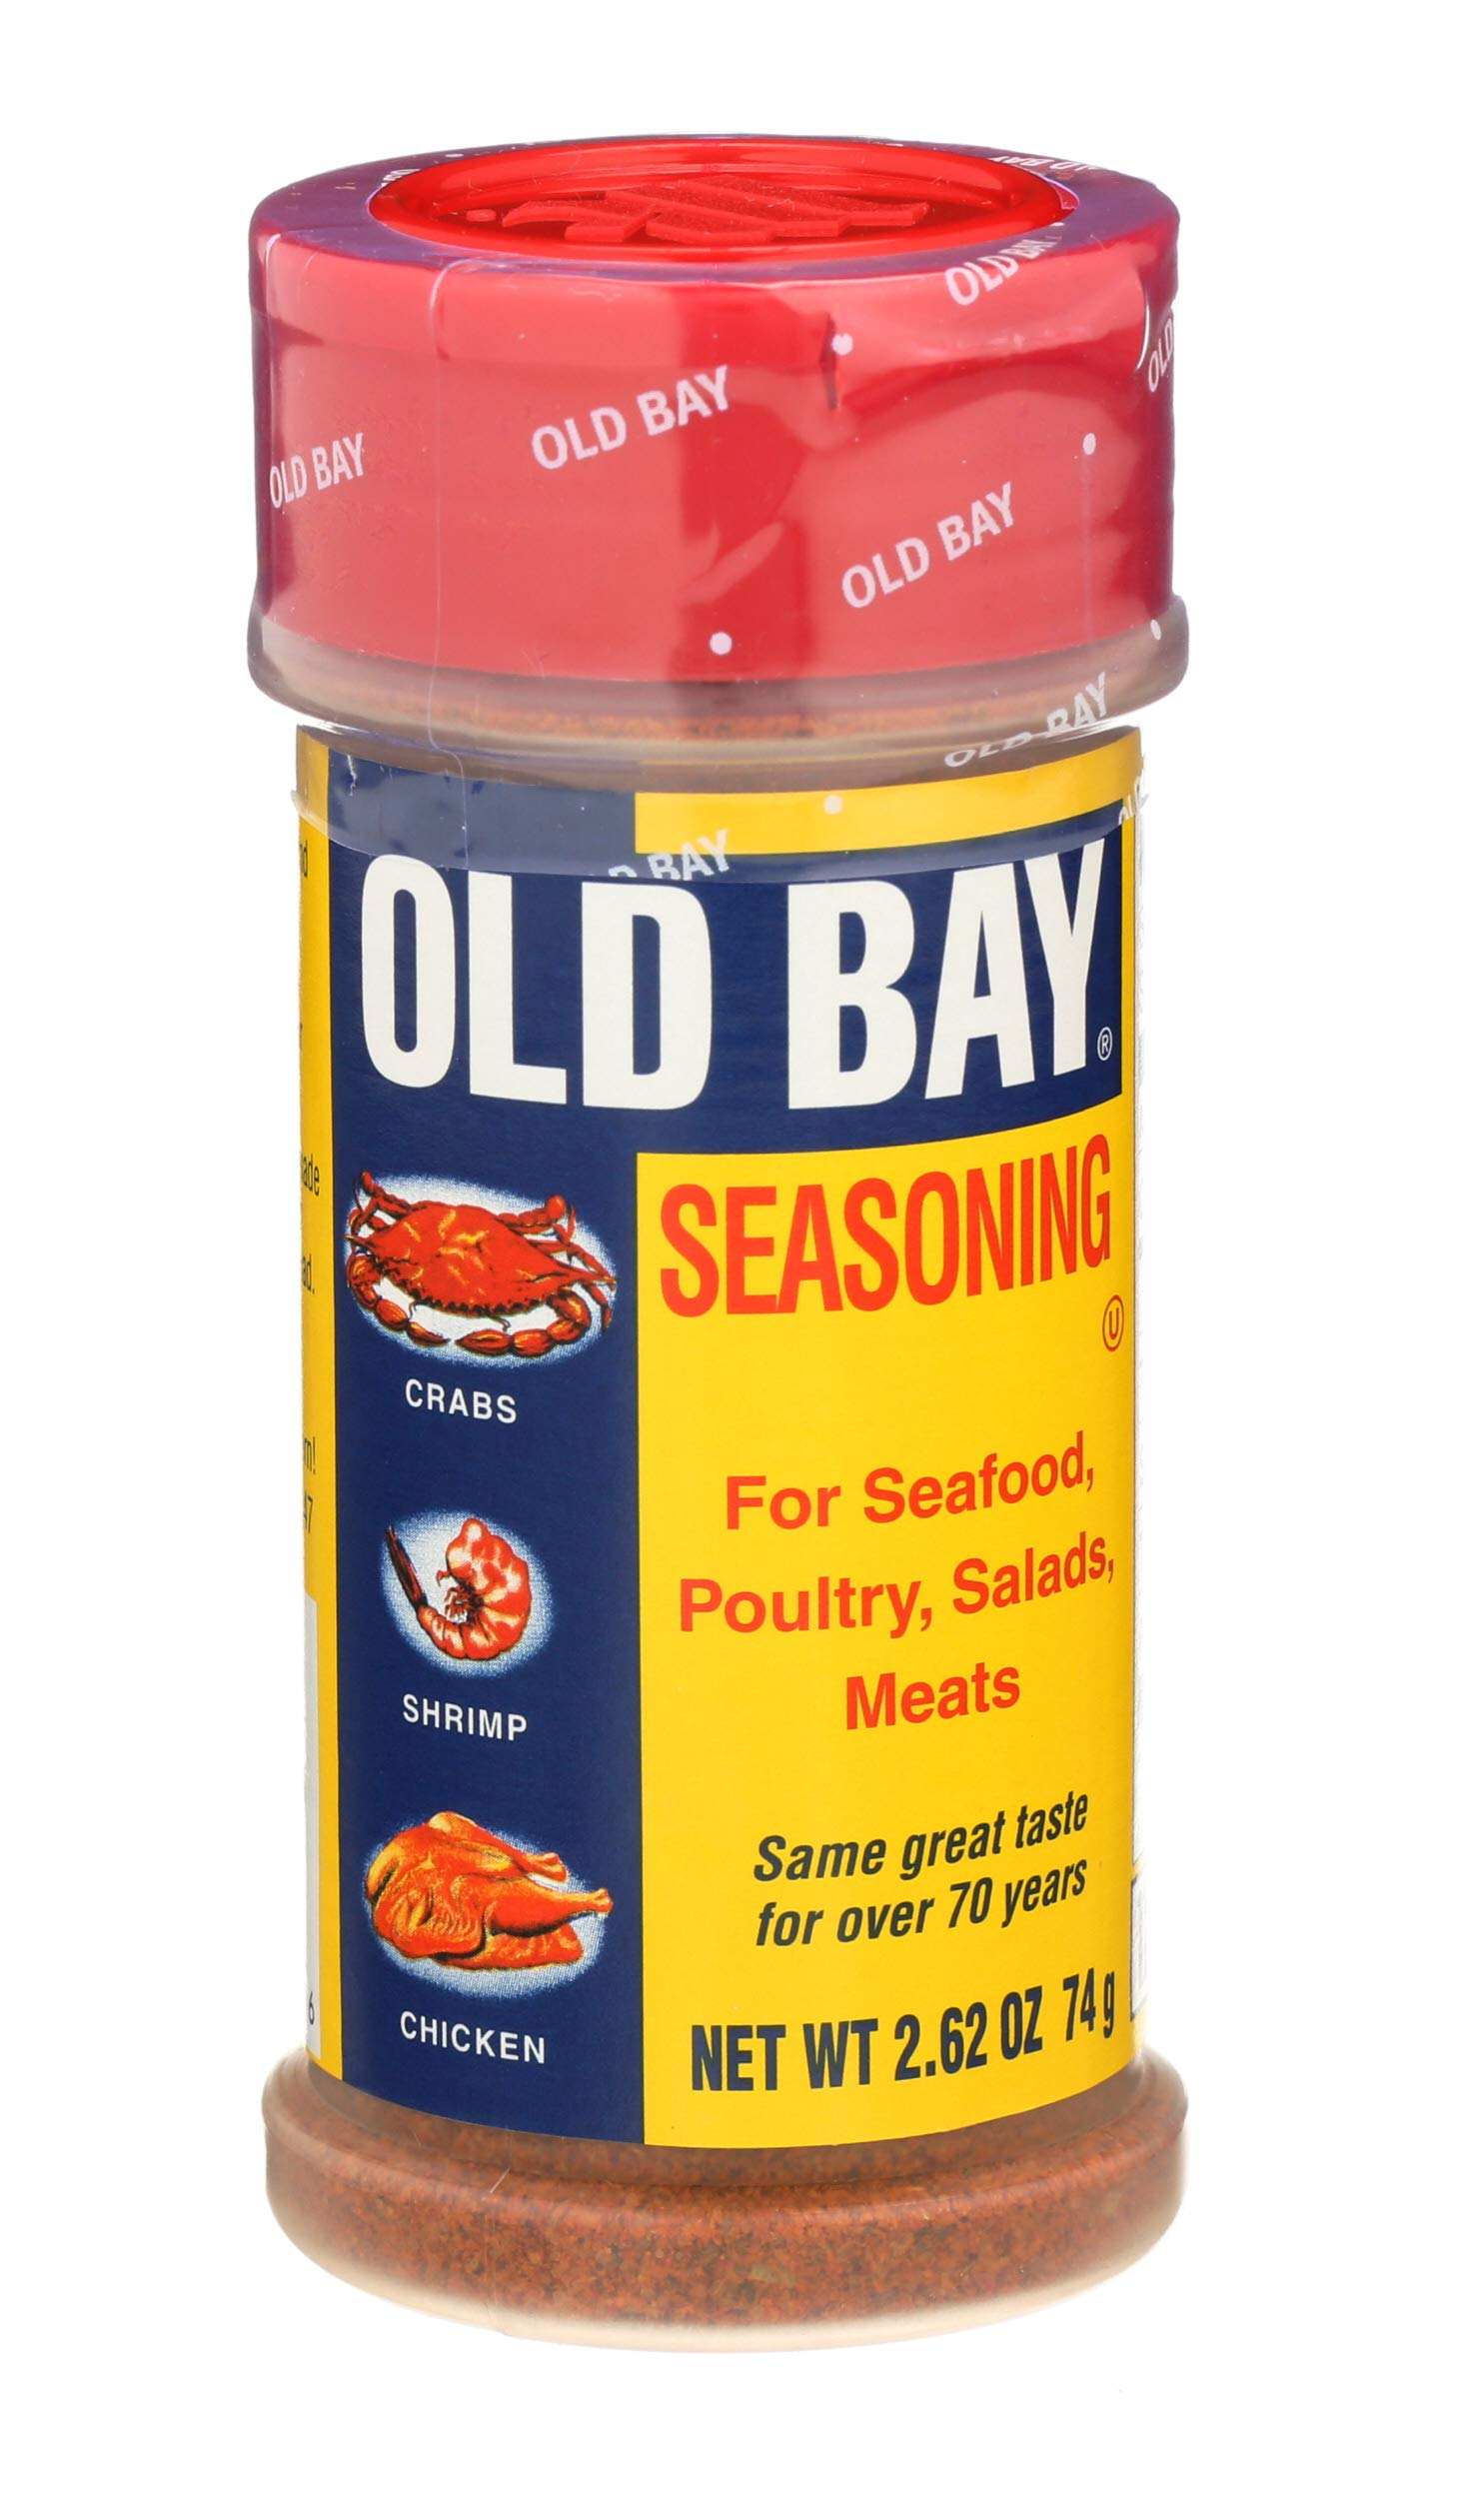 Old Bay Seasoning for Seafood - Poultry - Salads & Meats 74g